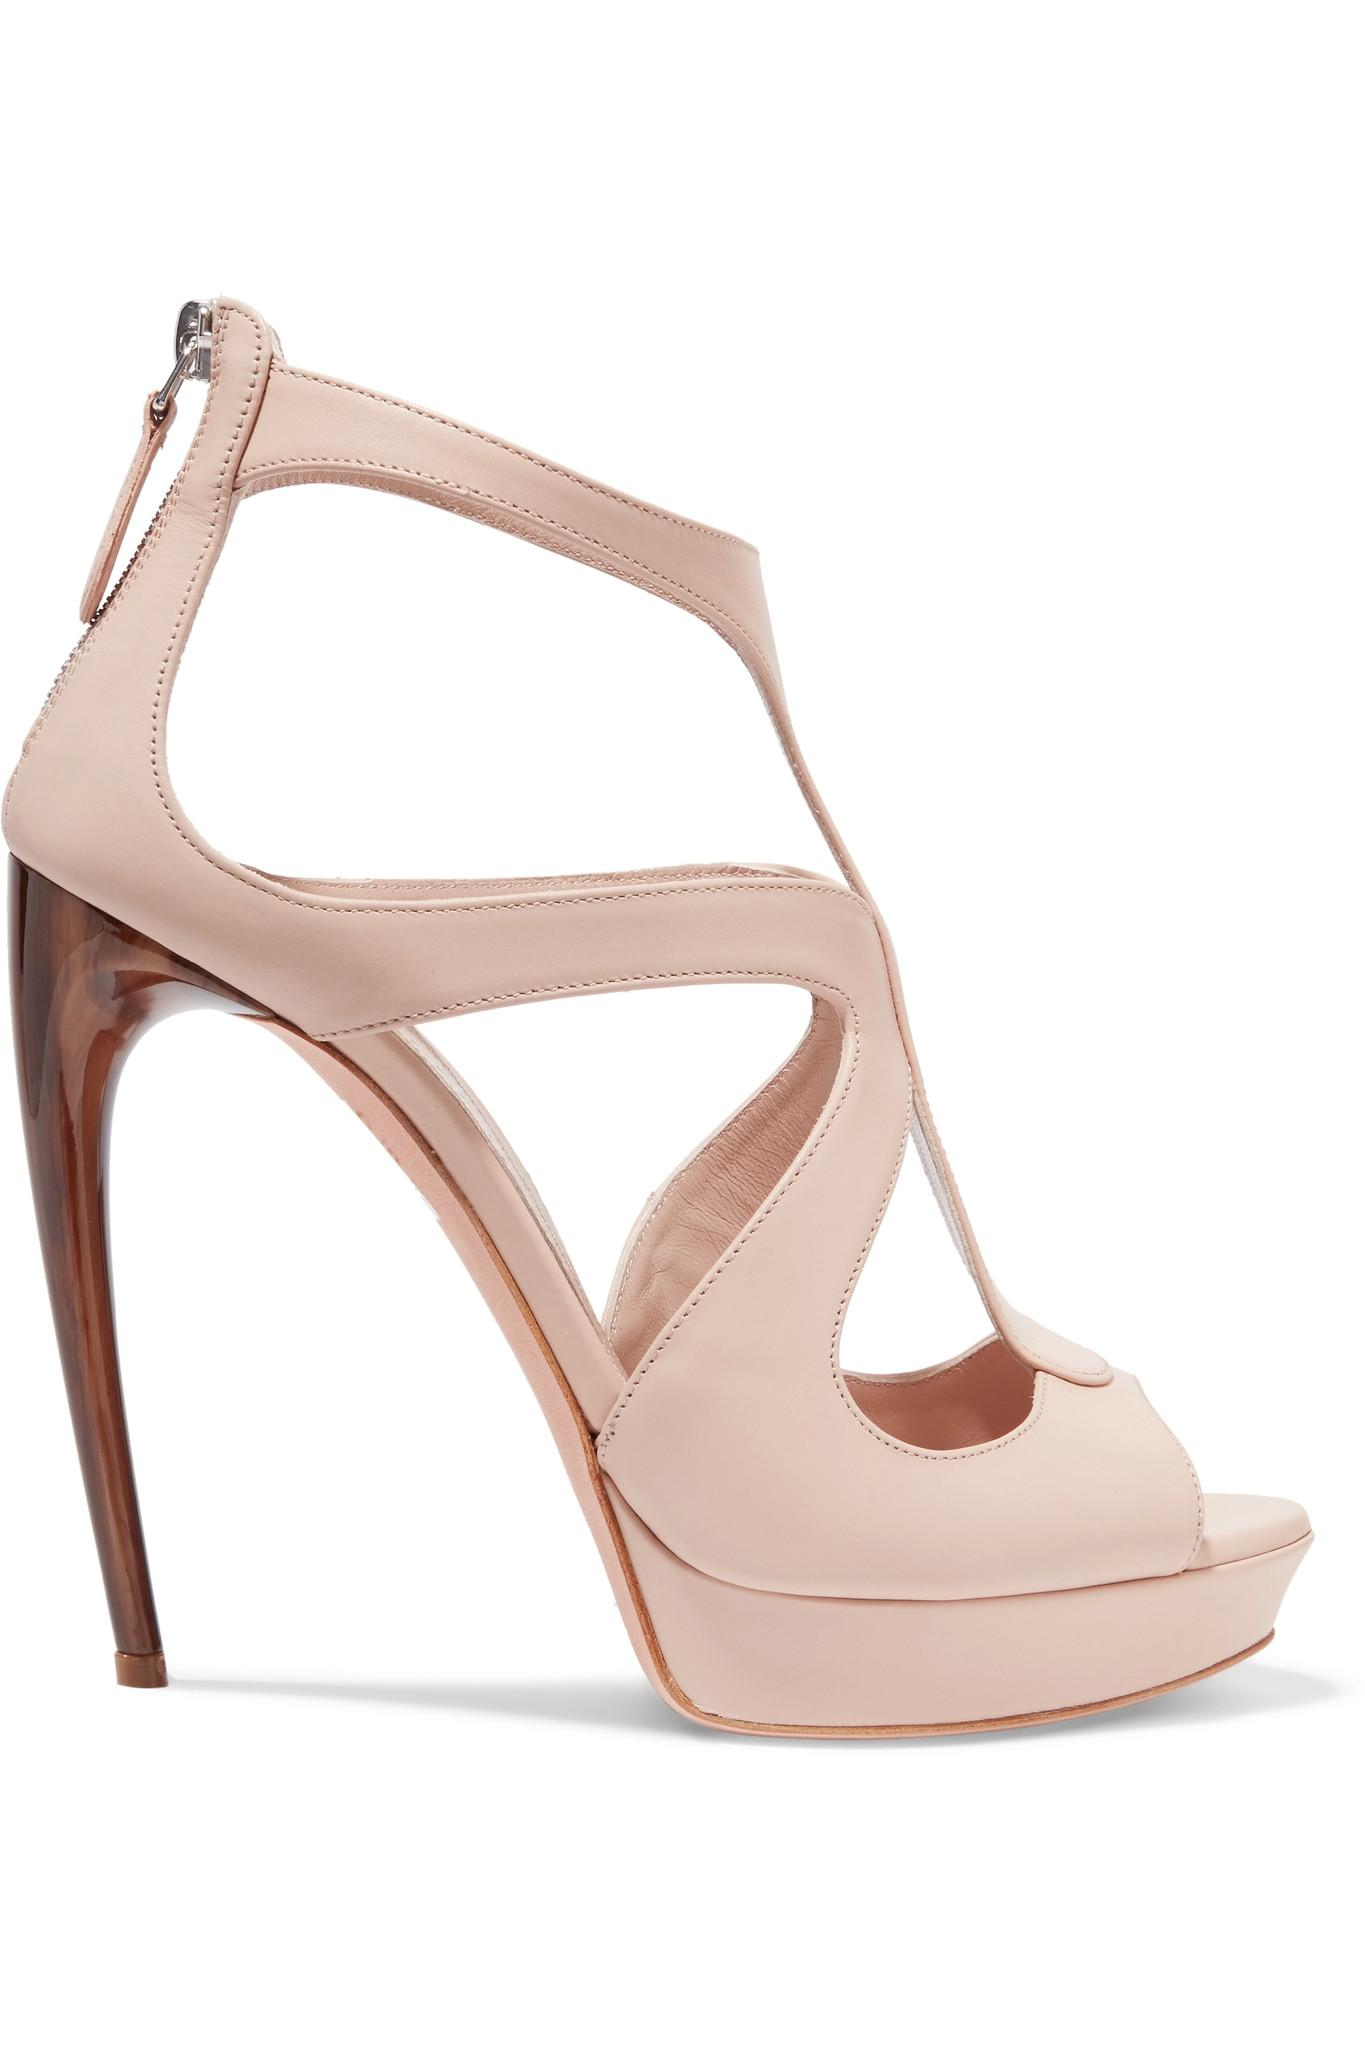 cheap limited edition outlet new styles Alexander McQueen Platform Leather Sandals cheap outlet store cQNLvCt2